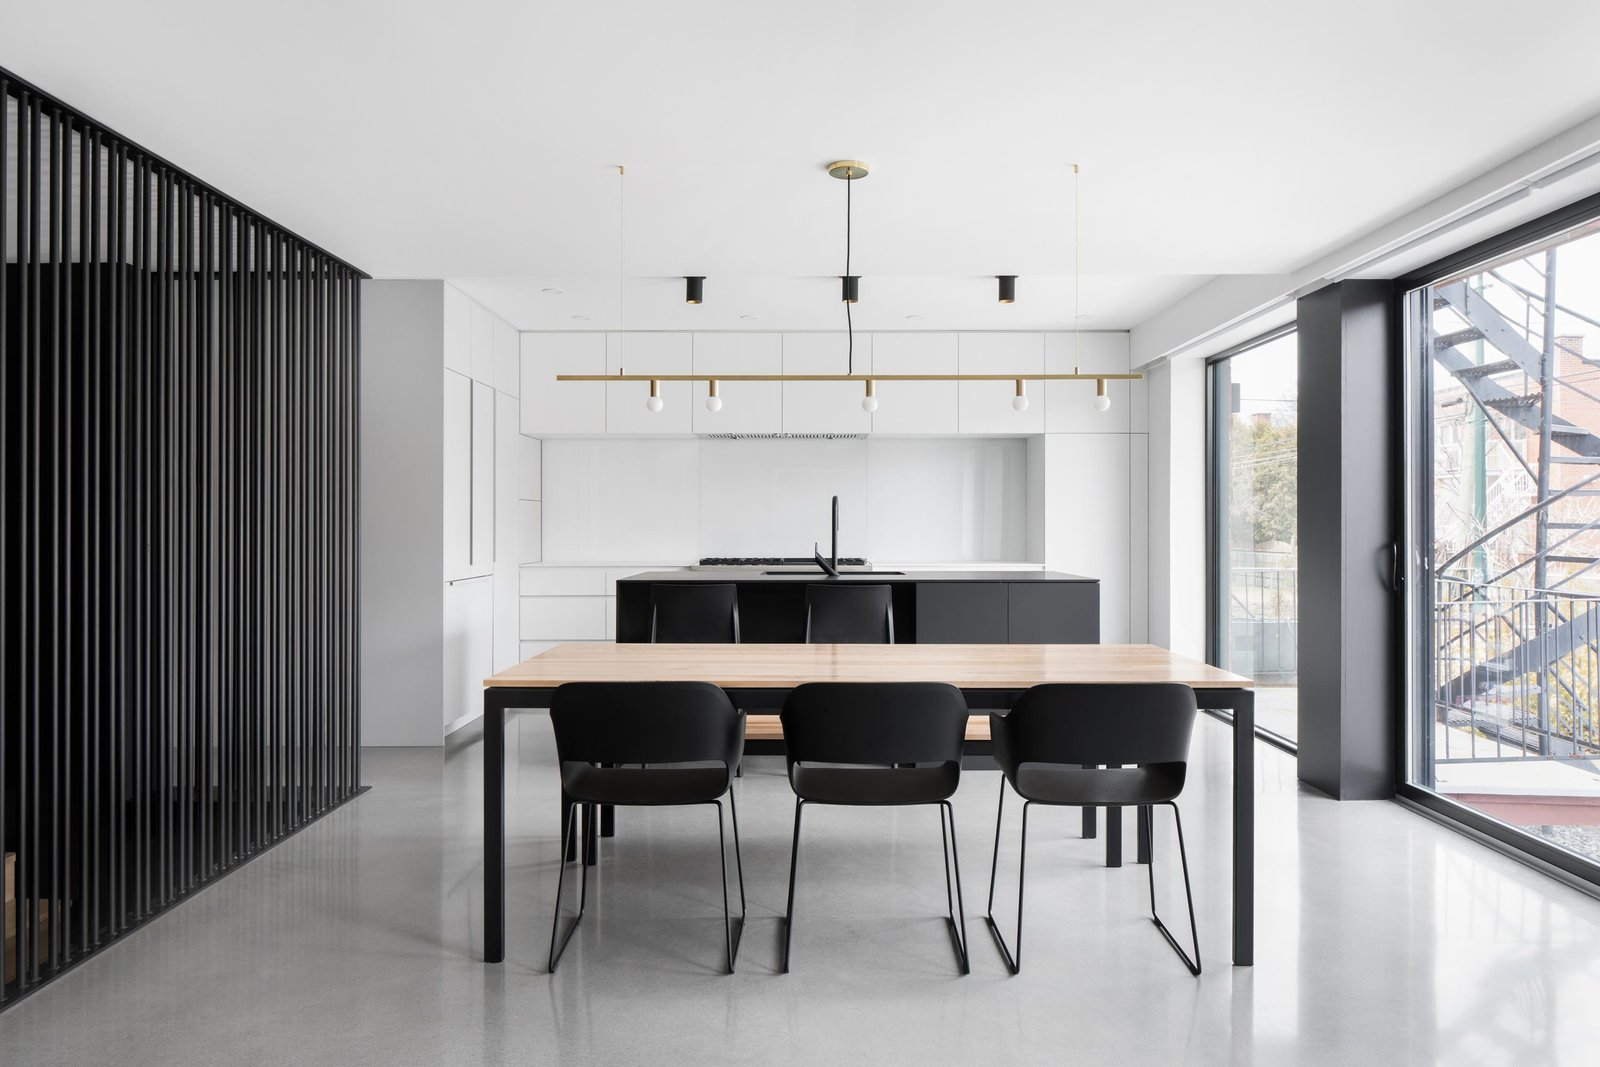 The kitchen bookends an open-plan layout that also includes a dining area and living room. Full-height windows help create a sense of spaciousness and open the living areas to the backyard.